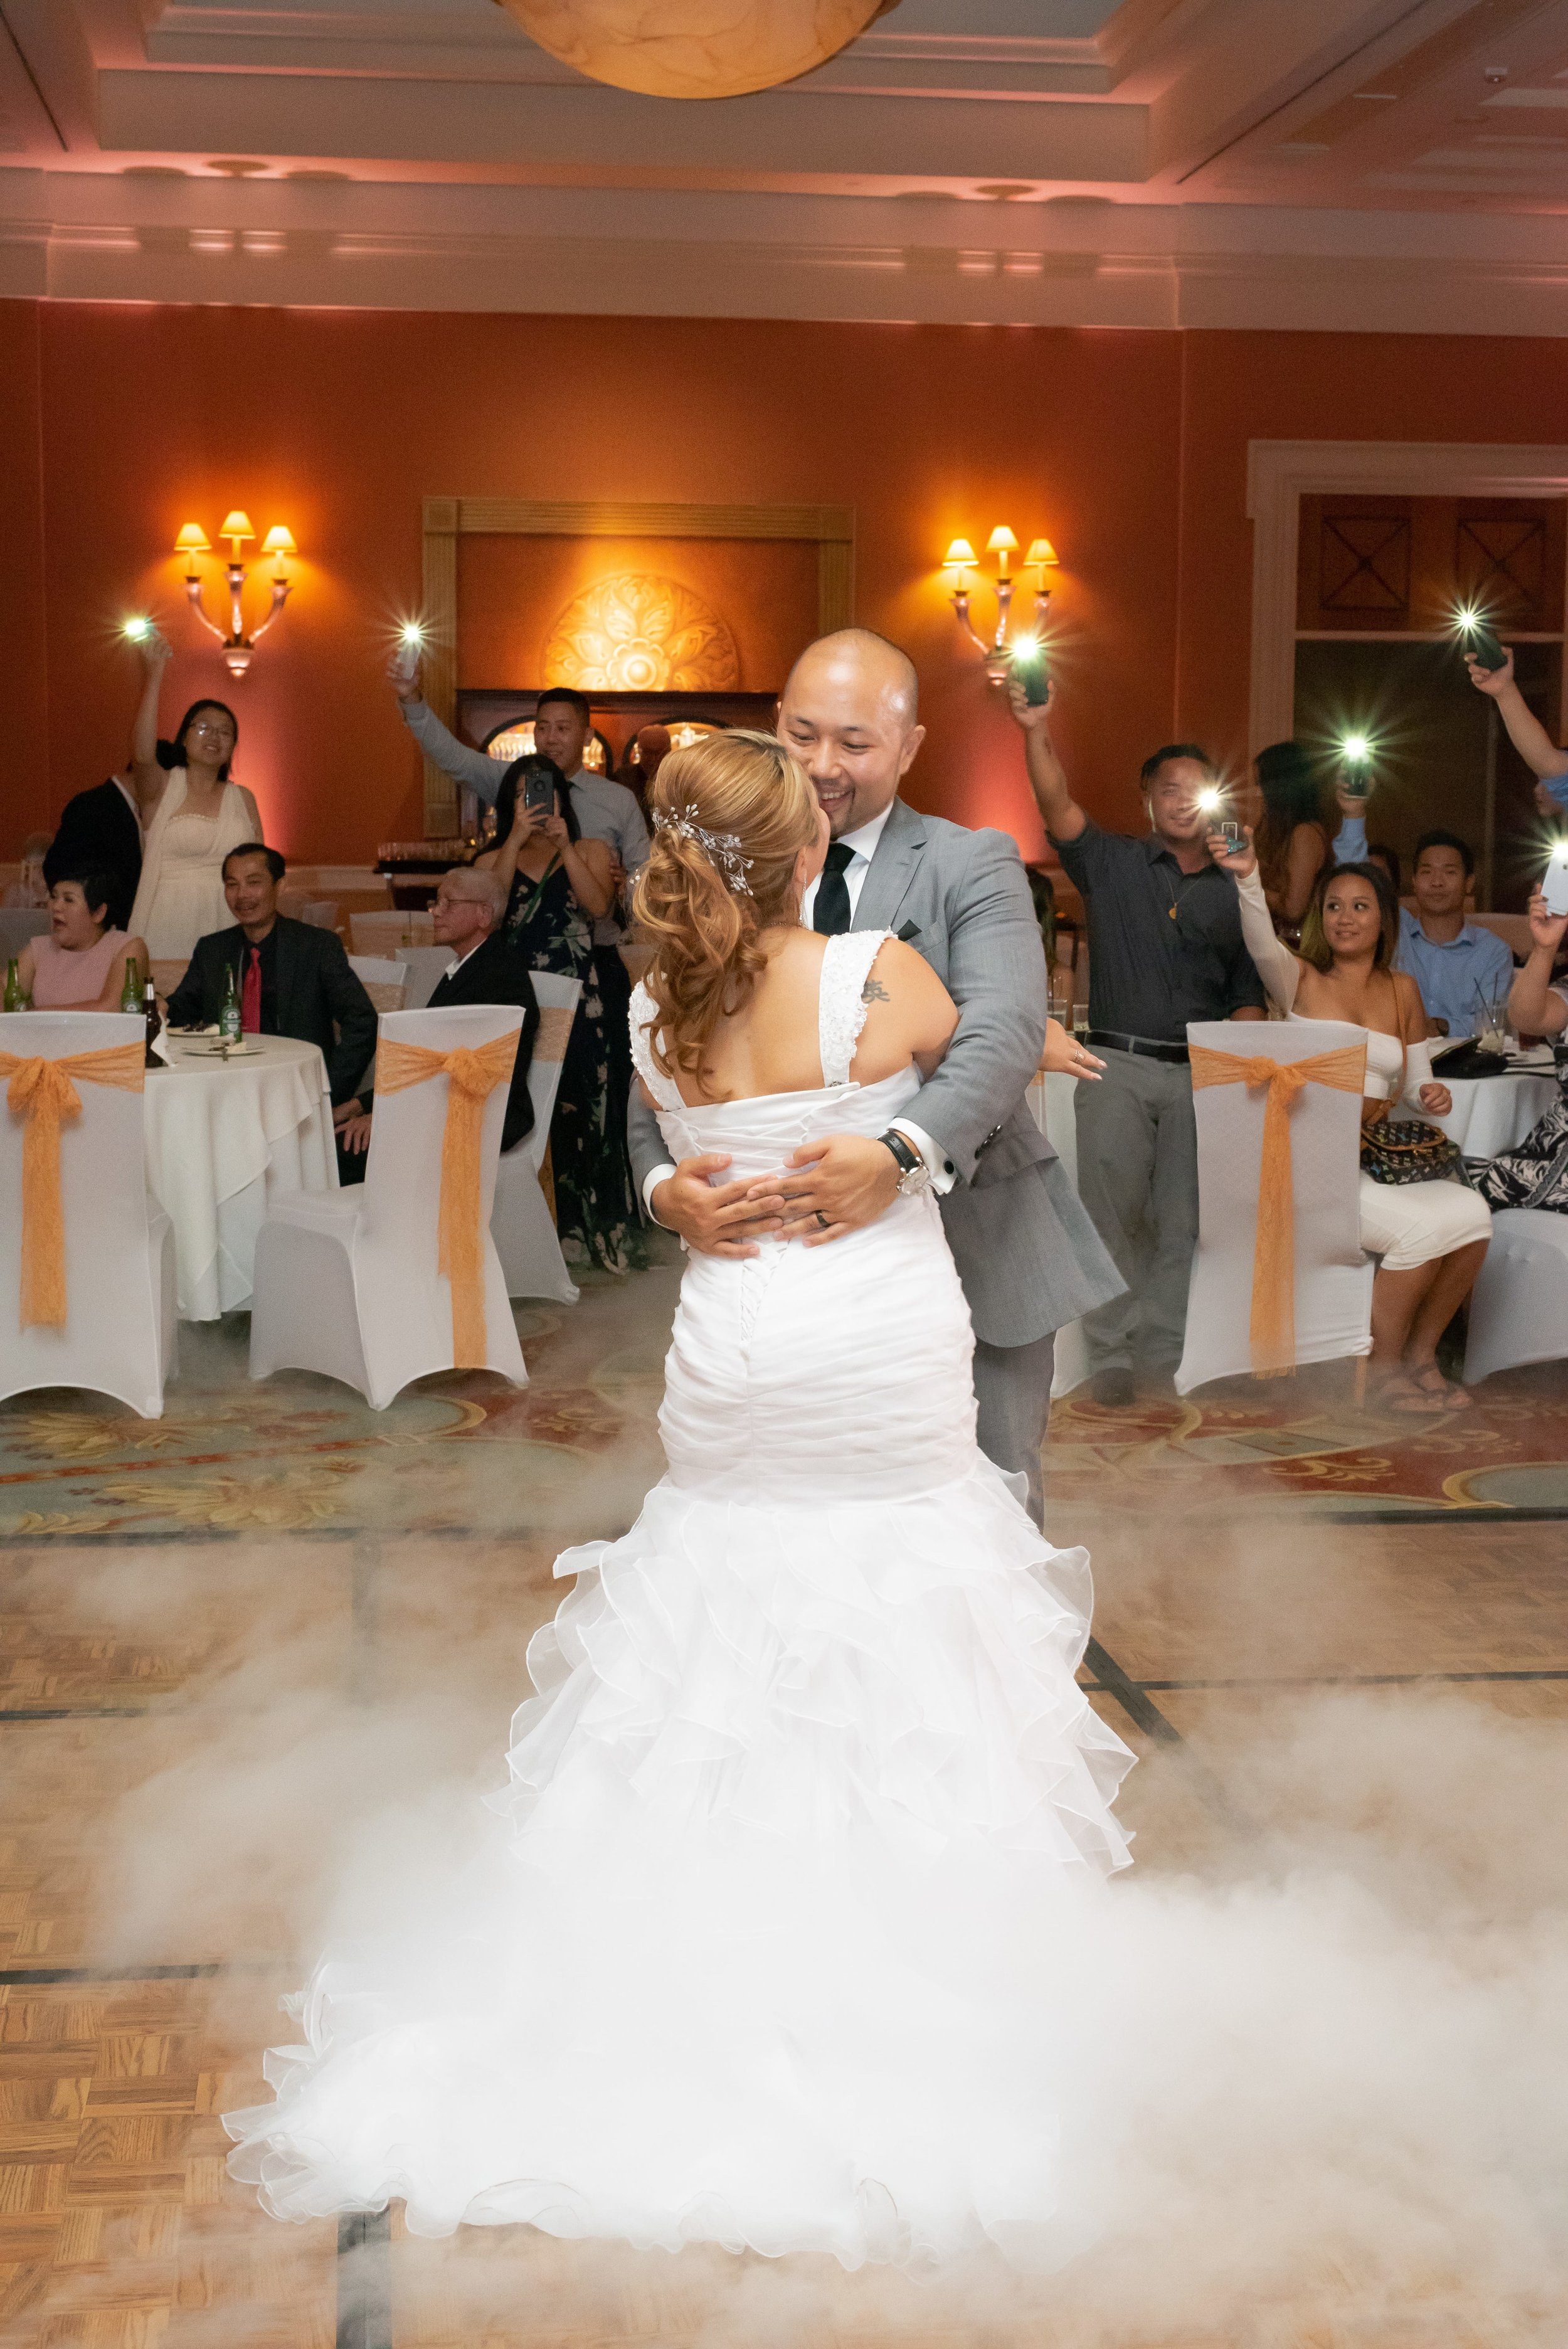 Bride and groom sharing a dance while their guests record them with their phones.